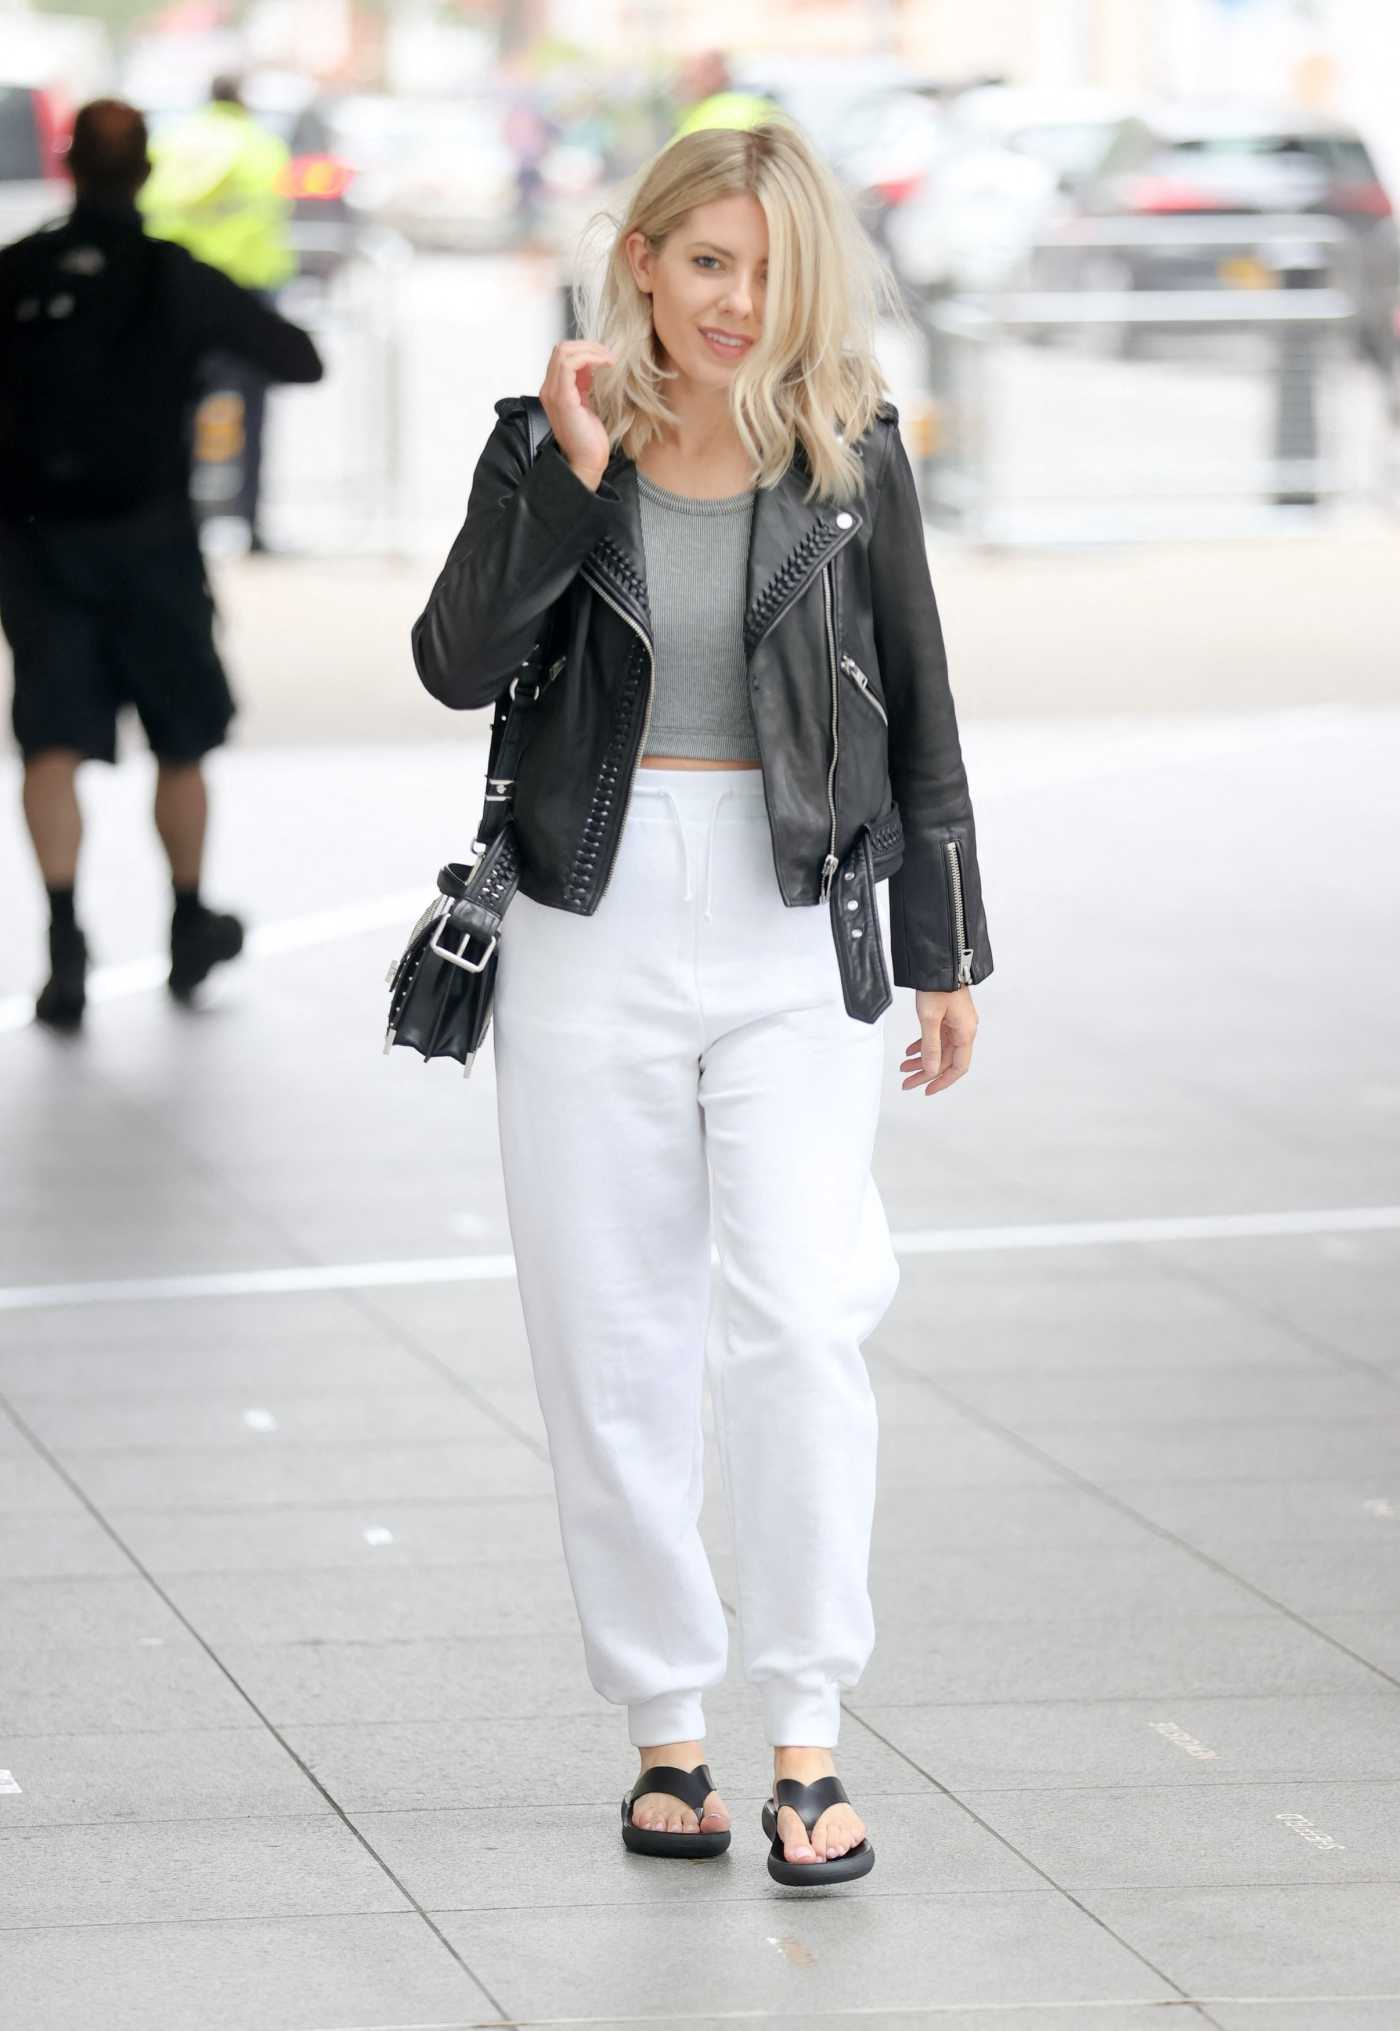 Mollie King in a White Pants Arrives at the BBC Studios in London 06/27/2021